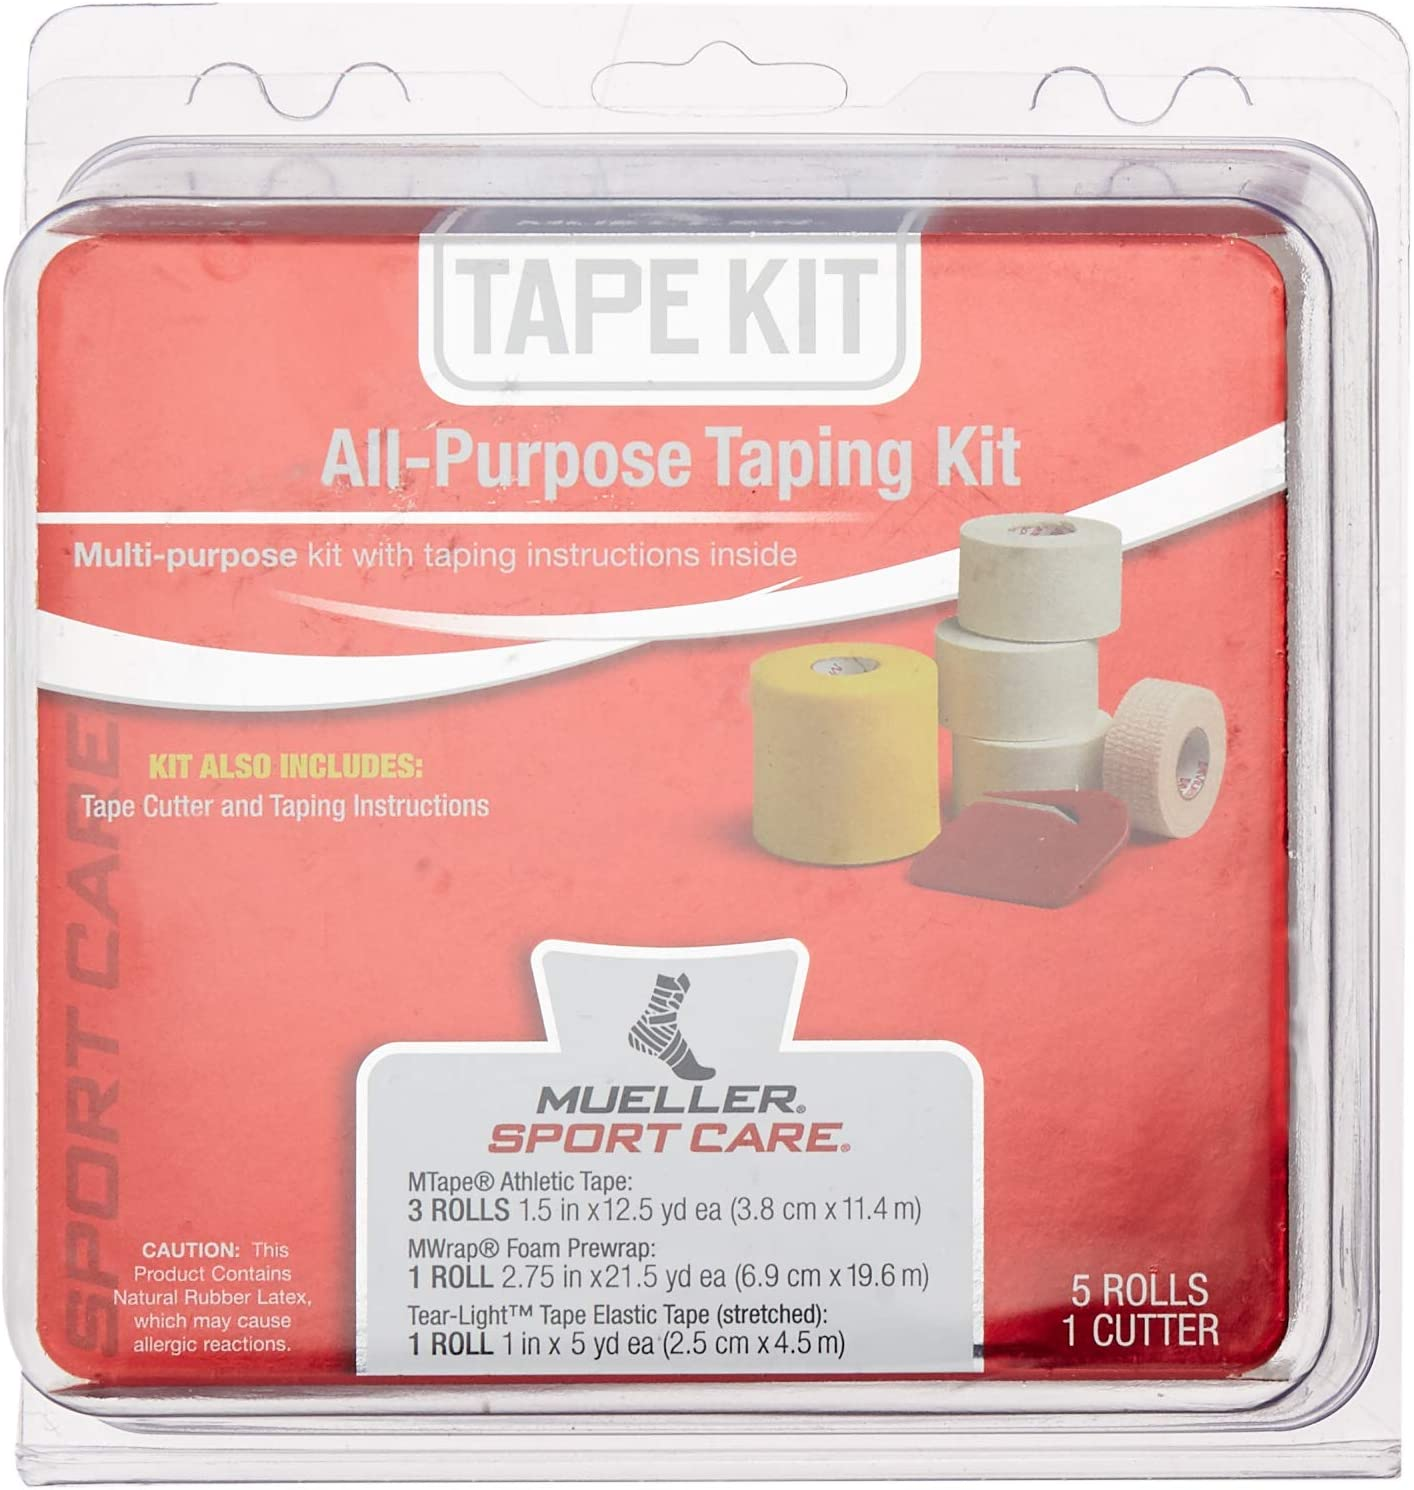 Mueller All-Purpose Taping Kit | Includes 3 Rolls Athletic Tape, 1 Roll Foam Prewrap, 1 Roll Tear-Light Tape, 1 Tape Cutter: Health & Personal Care